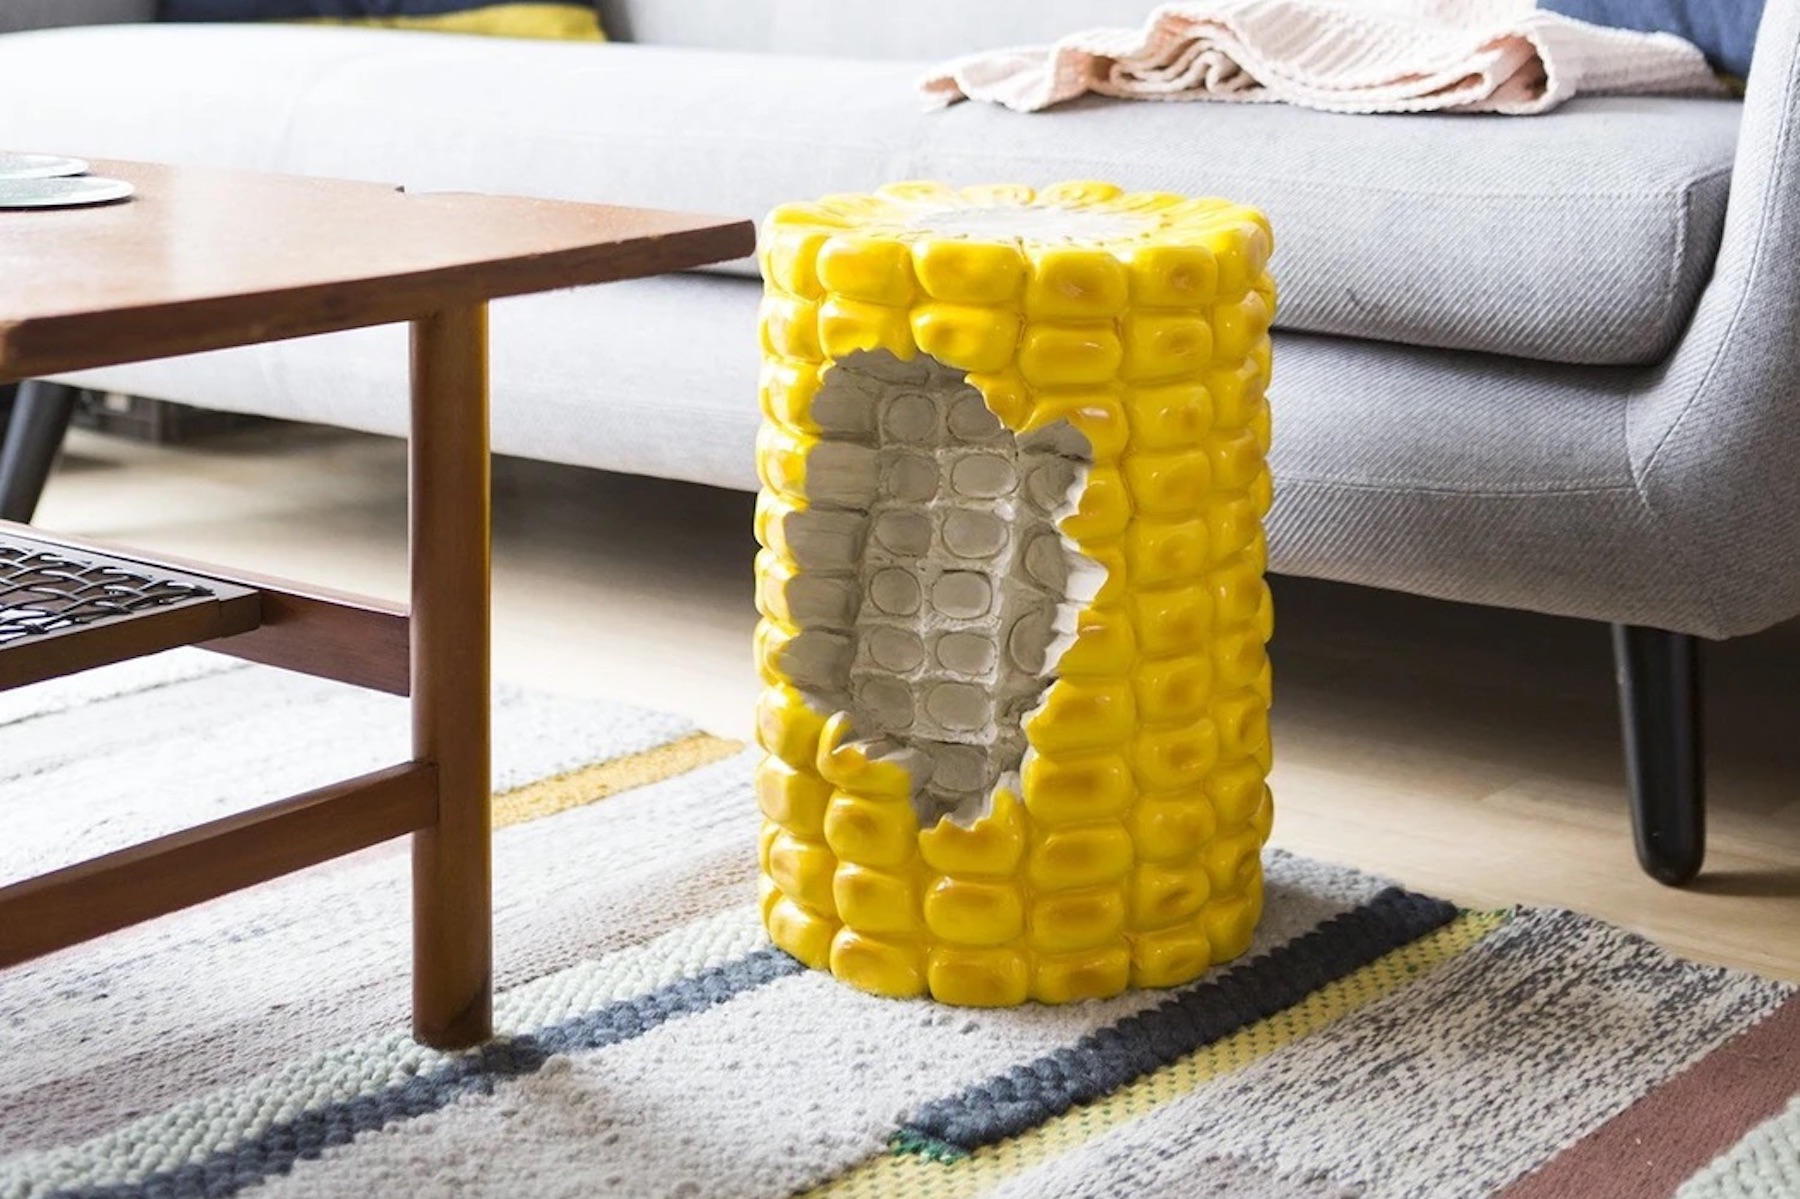 A stool shaped like corn-on-the-cob with a bite taken out of it is placed on a woven rug, next to a grey couch and dark wood coffee table.